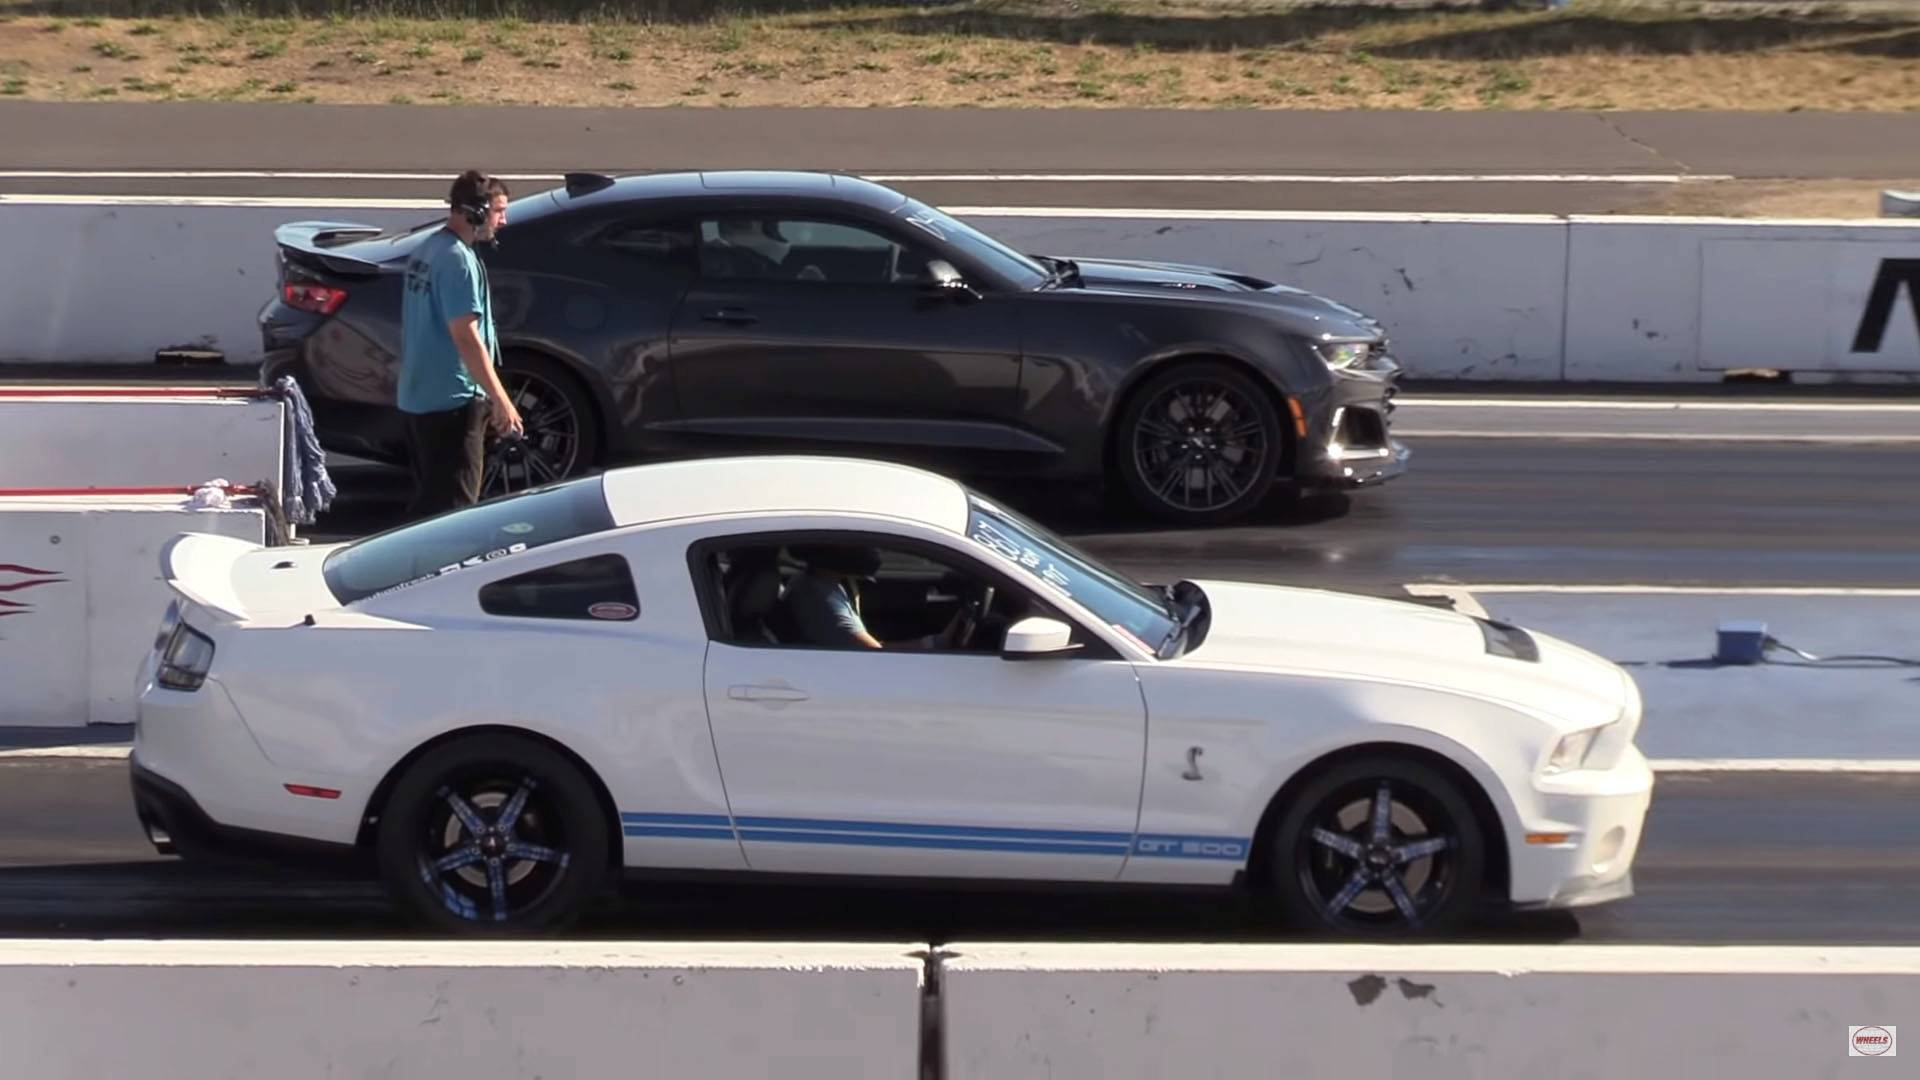 Supercharged showdown mustang shelby gt500 battles camaro zl1